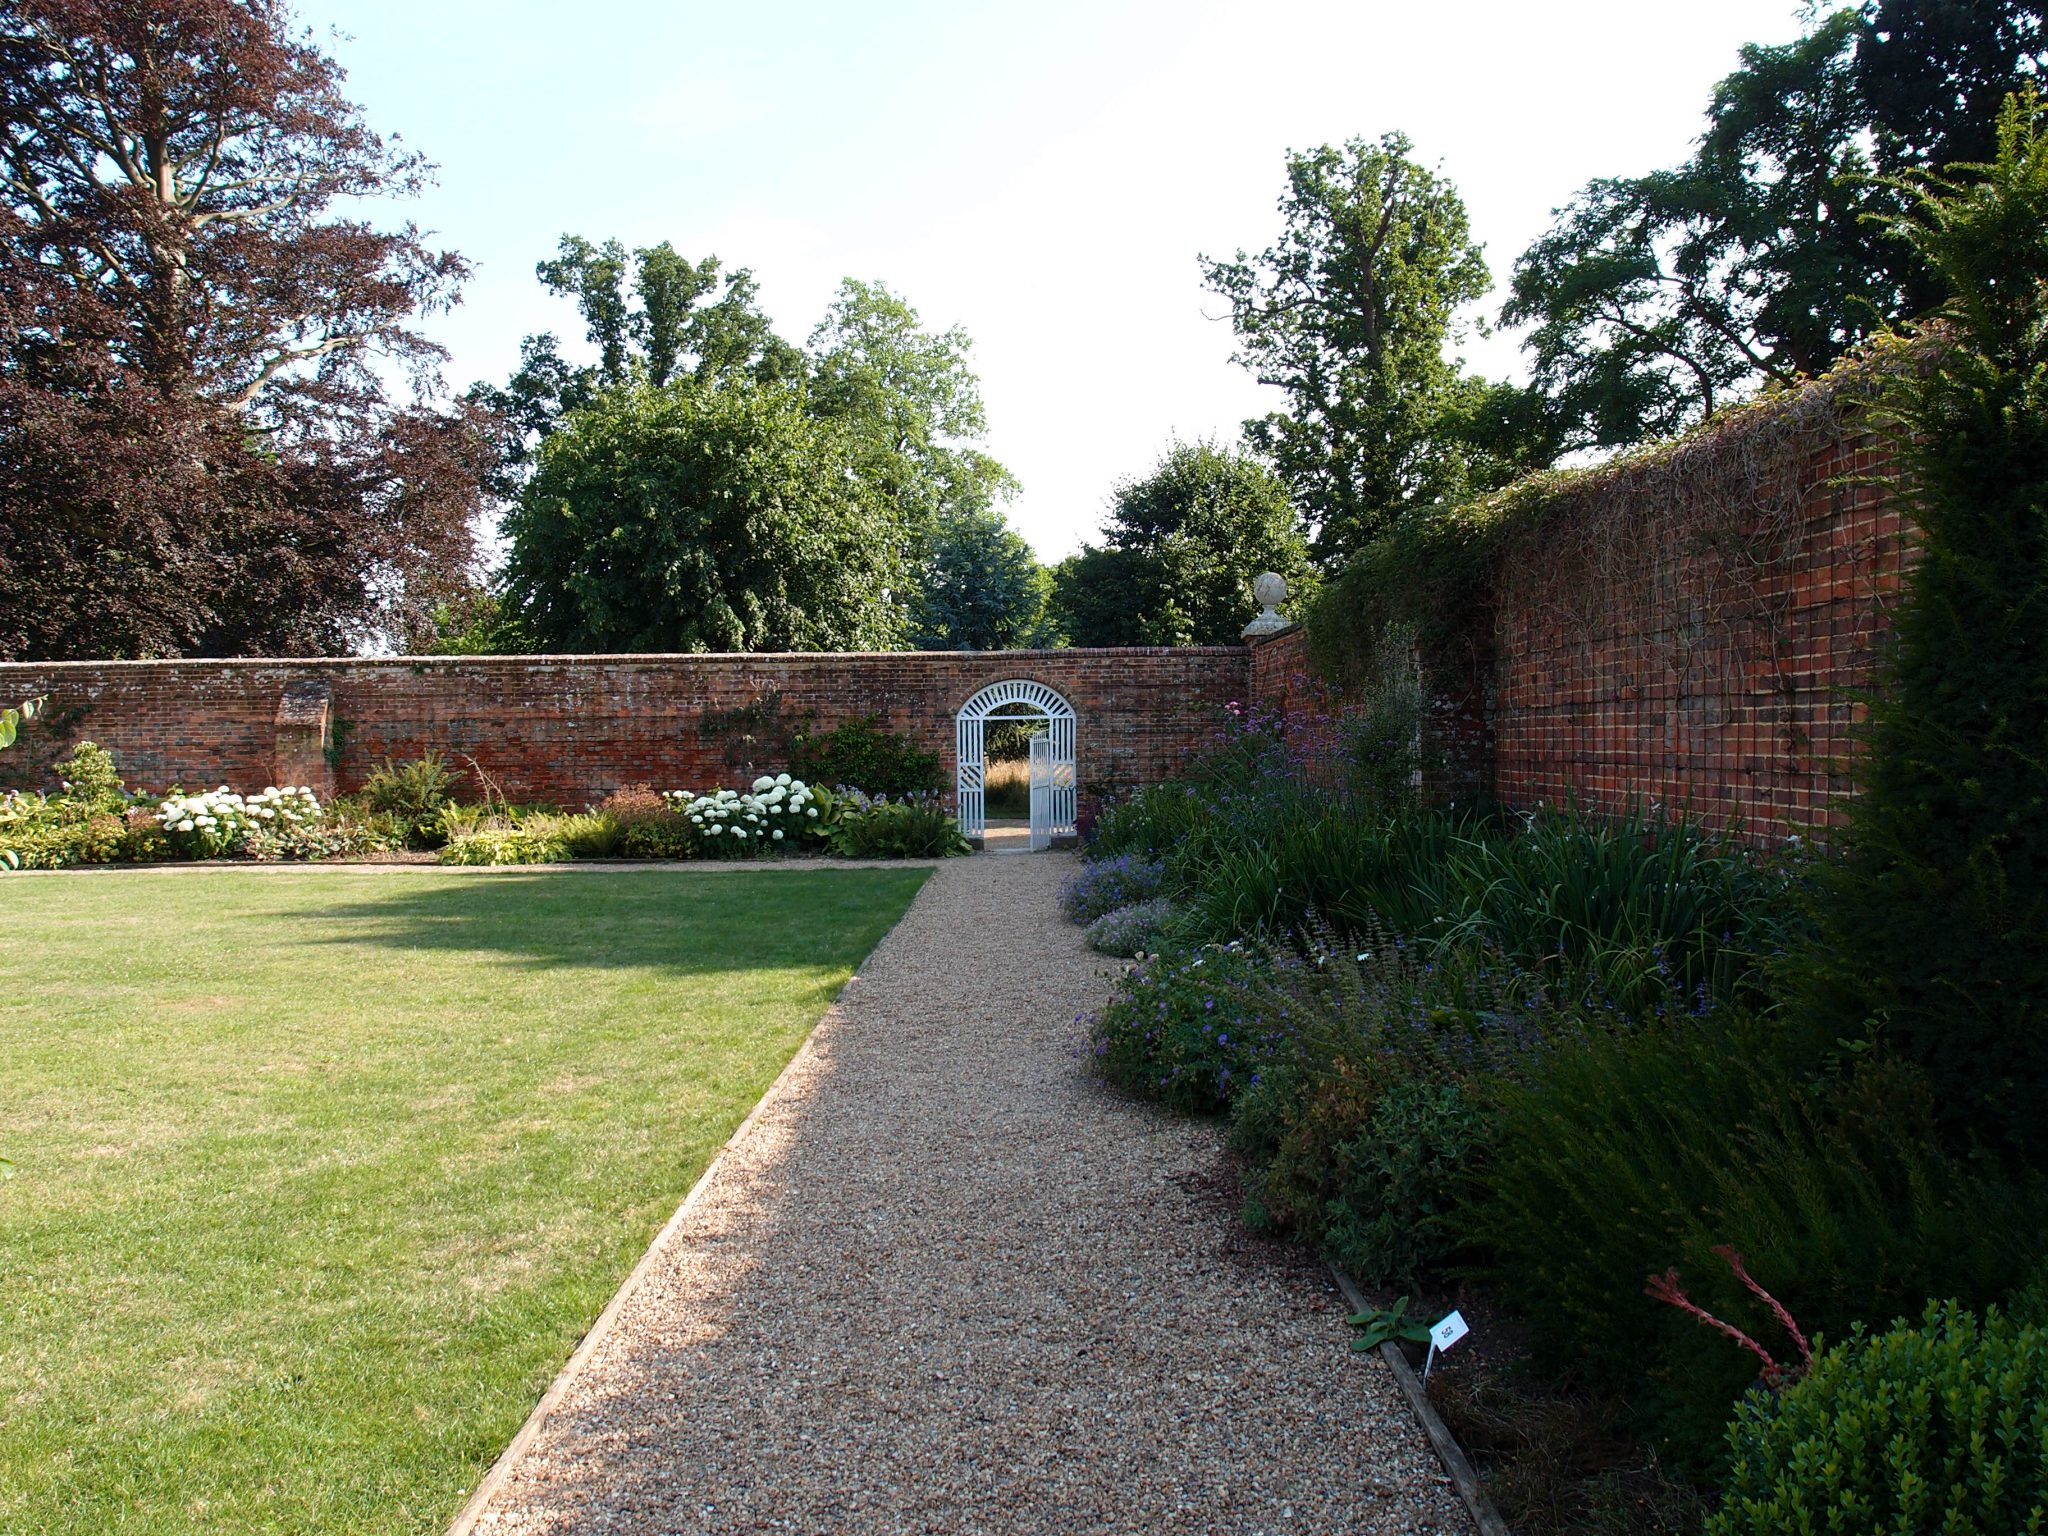 Another corner in the Walled Garden